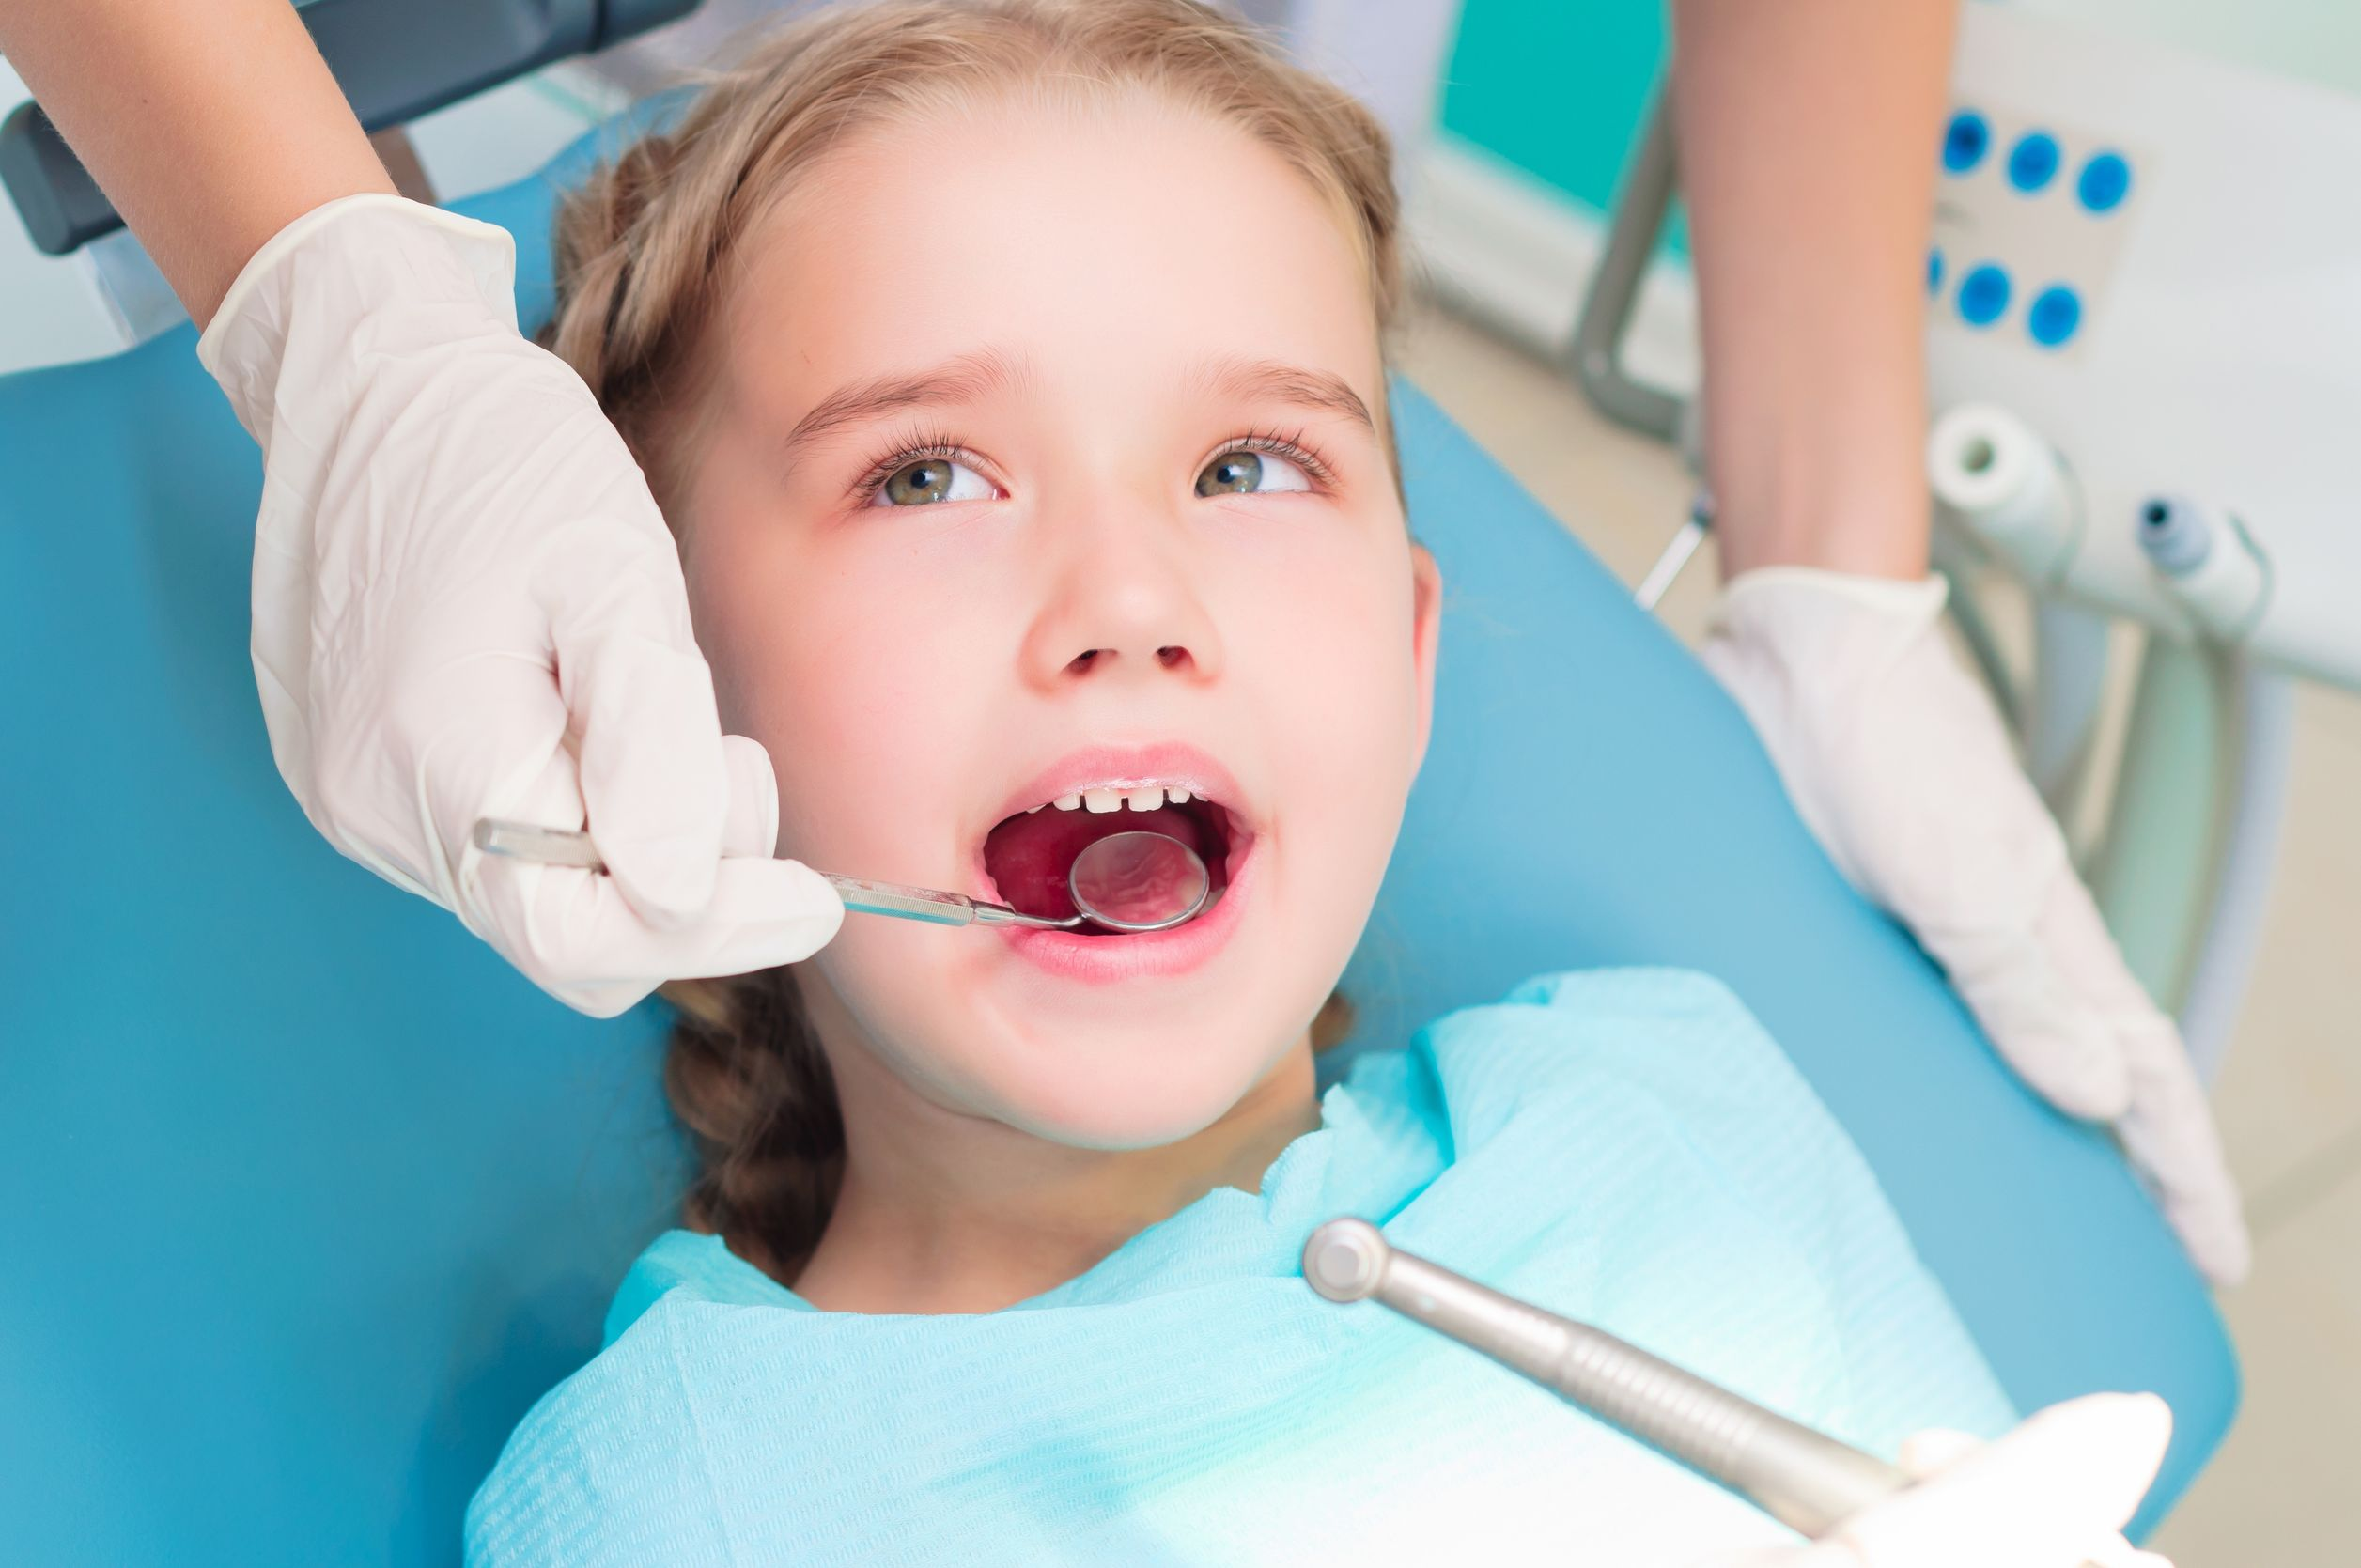 Children's Dentist - Pediatric Dentist Dubai